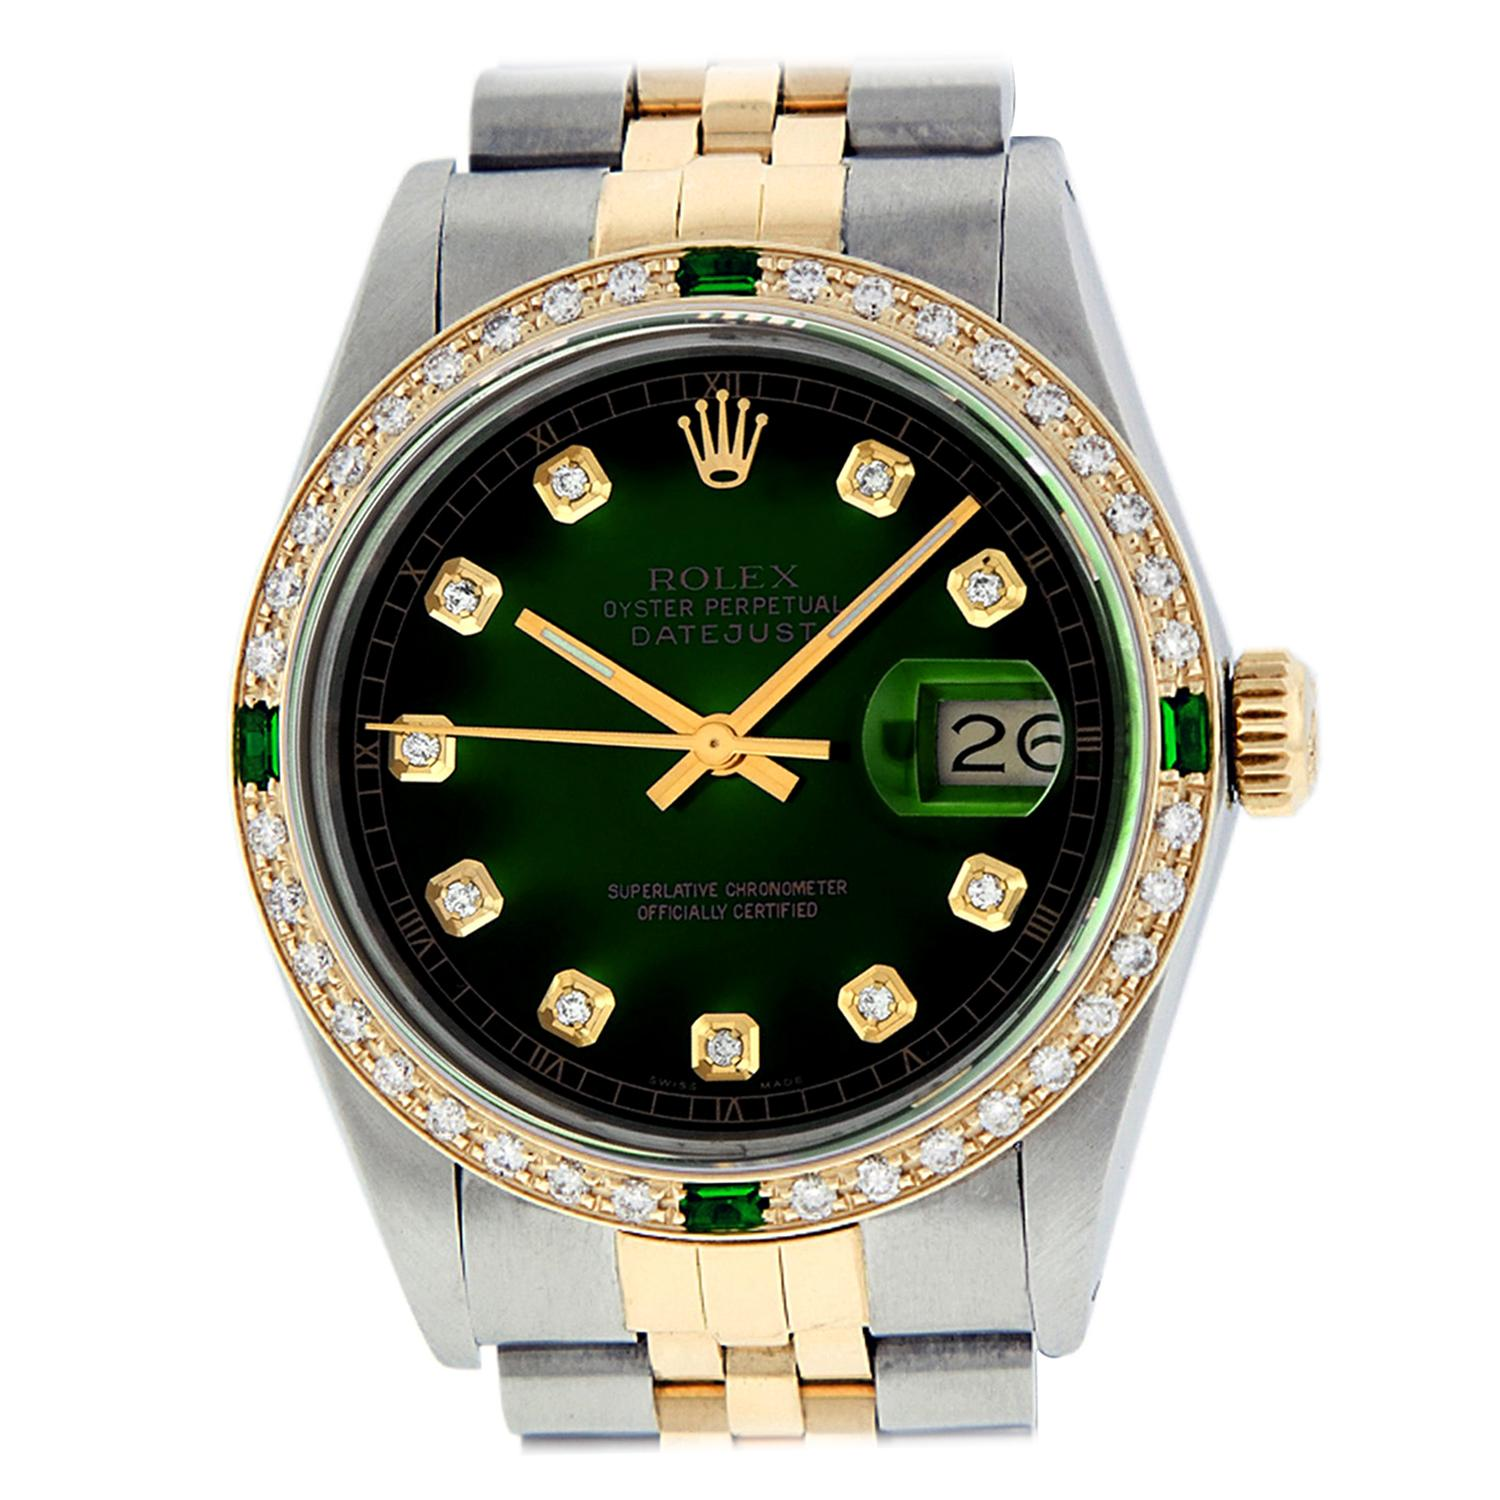 Rolex Men's Datejust SS / 18K Yellow Gold Green Vignette Diamond Watch Emerald